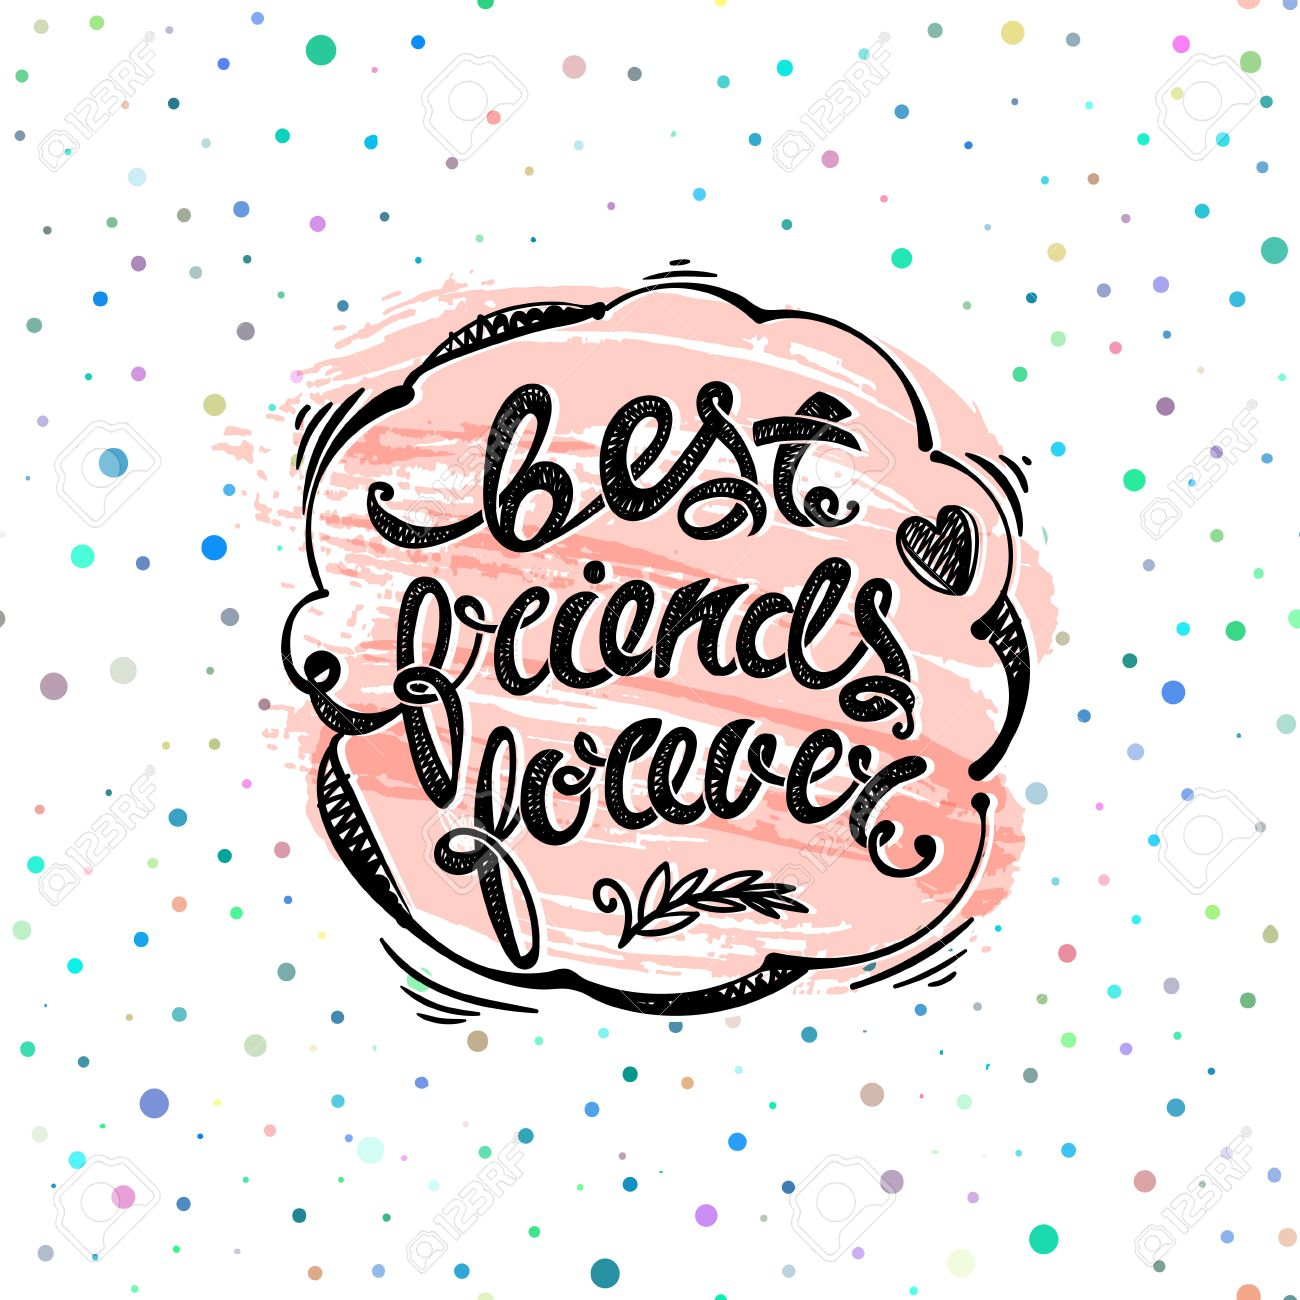 Best Friends Forever Hand Drawn Letters Royalty Free Cliparts